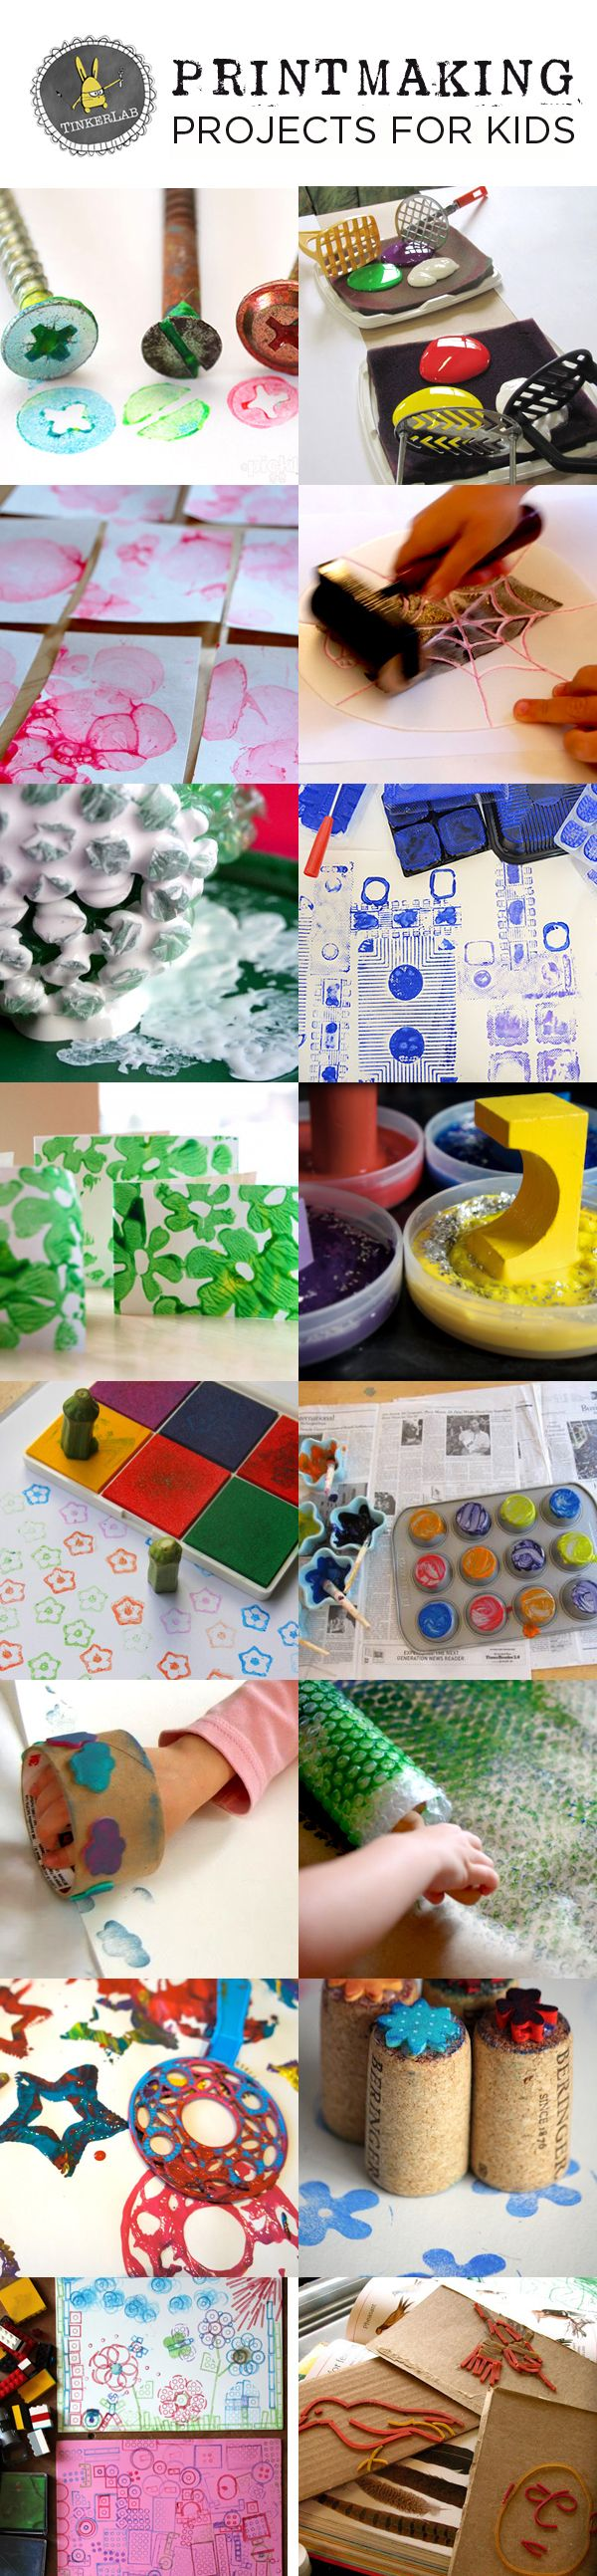 simple printmaking projects for kids